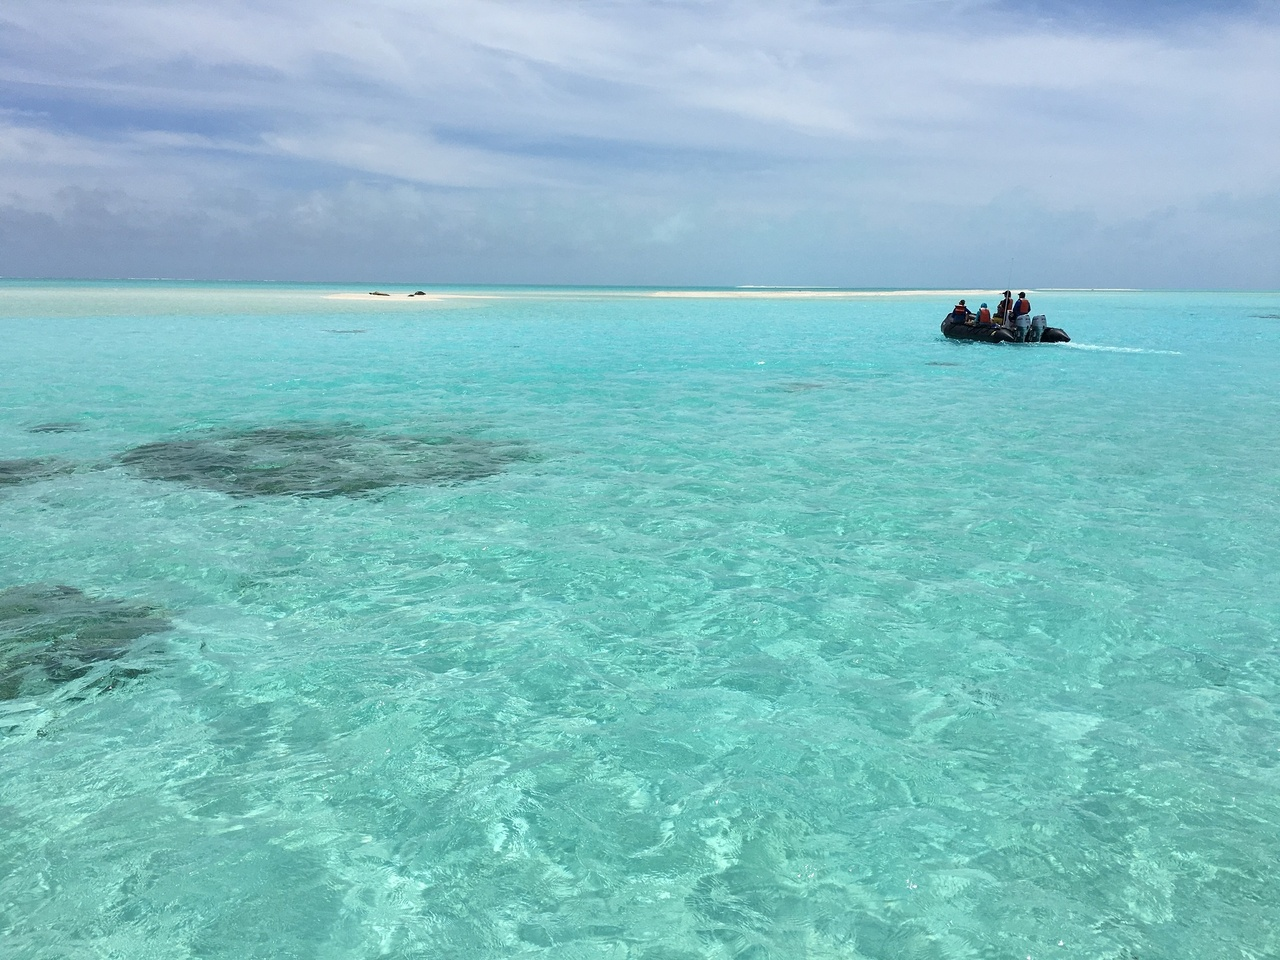 A small boat heads to North Island at Pearl and Hermes Reef to check for rehab candidates.